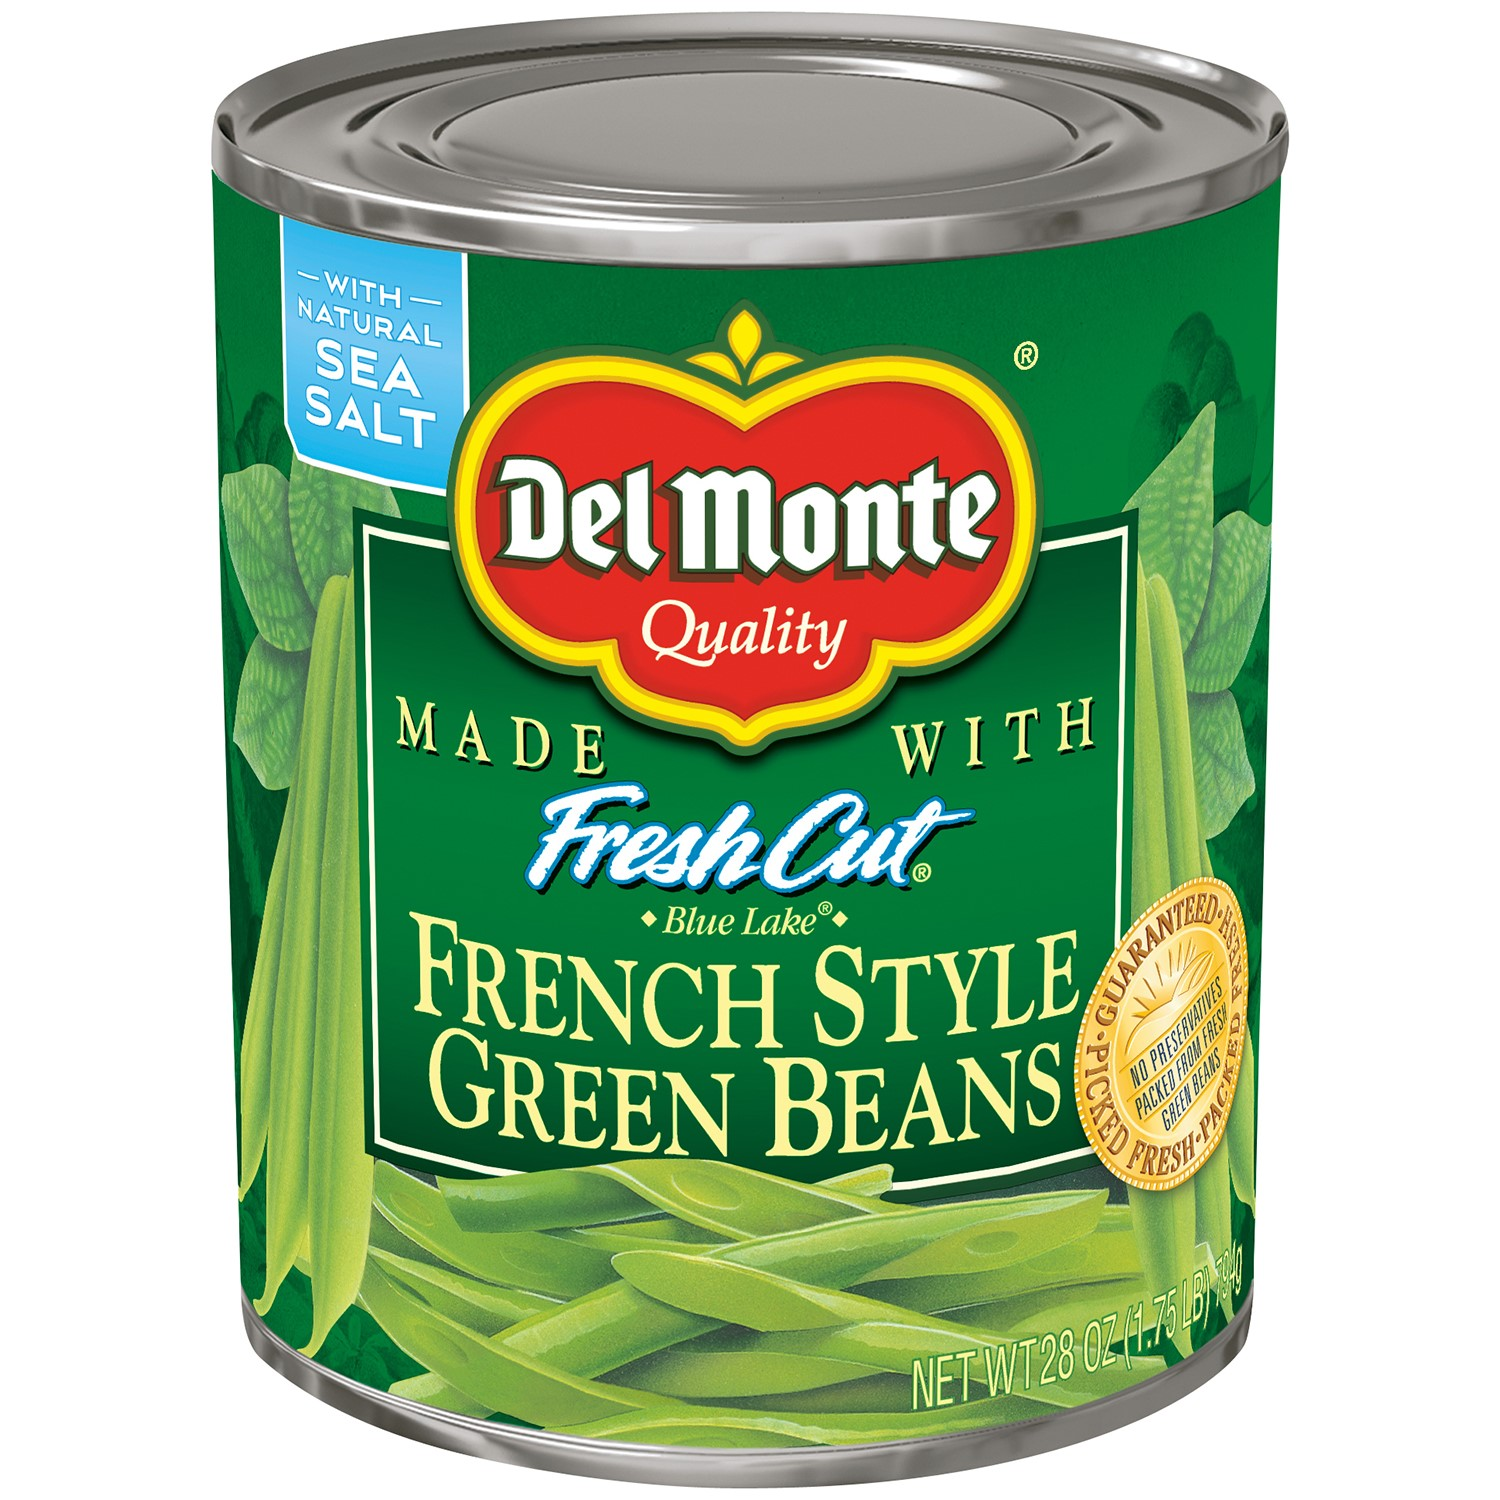 Del Monte French Style Blue Lake Green Beans, 28 Oz